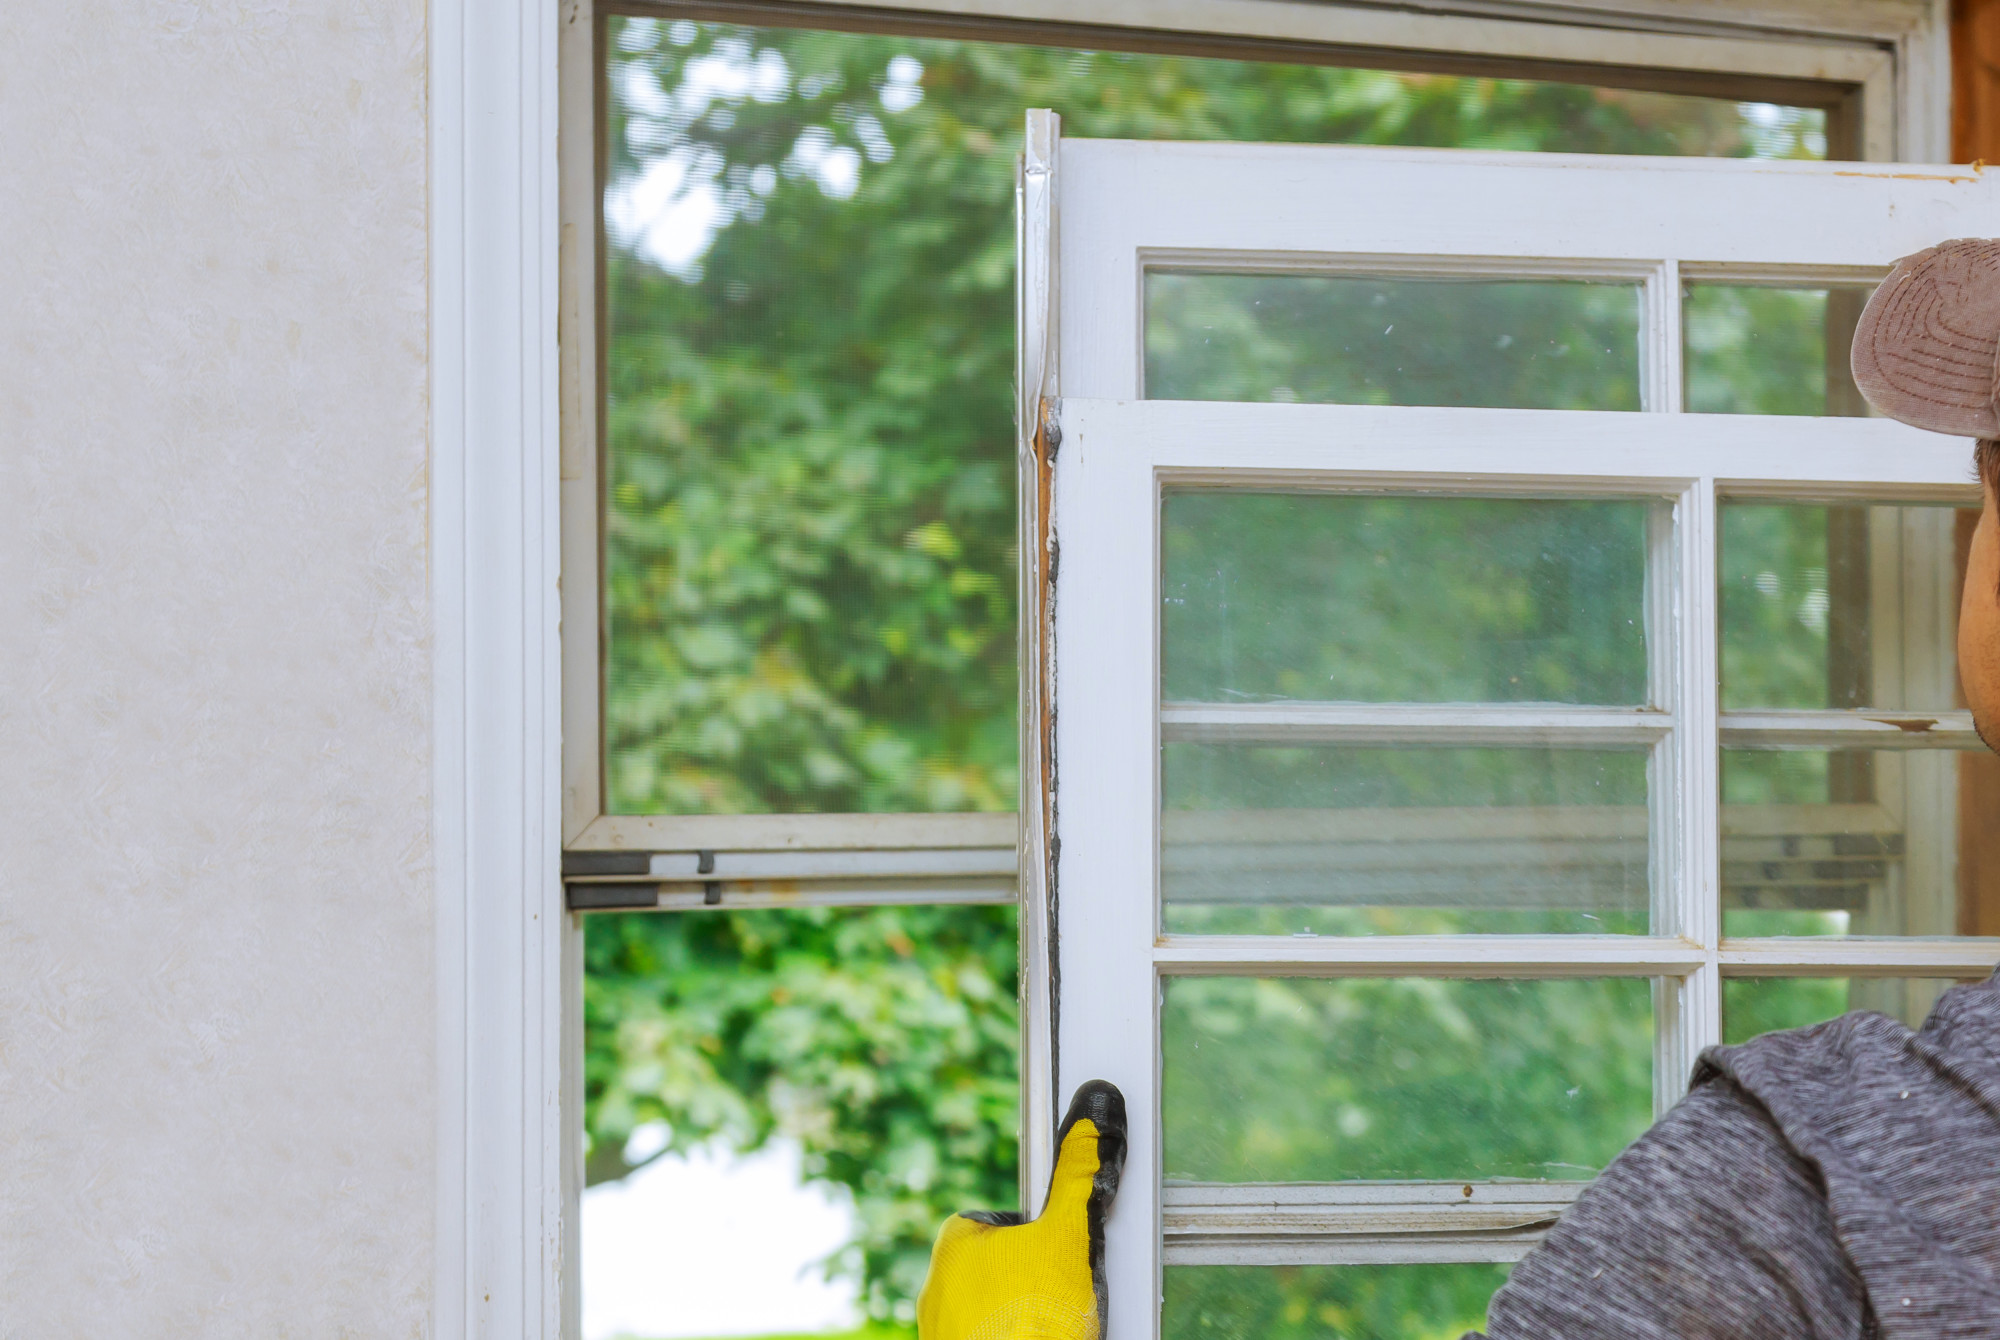 7 Telltale Signs It's Time to Replace Your Home's Windows